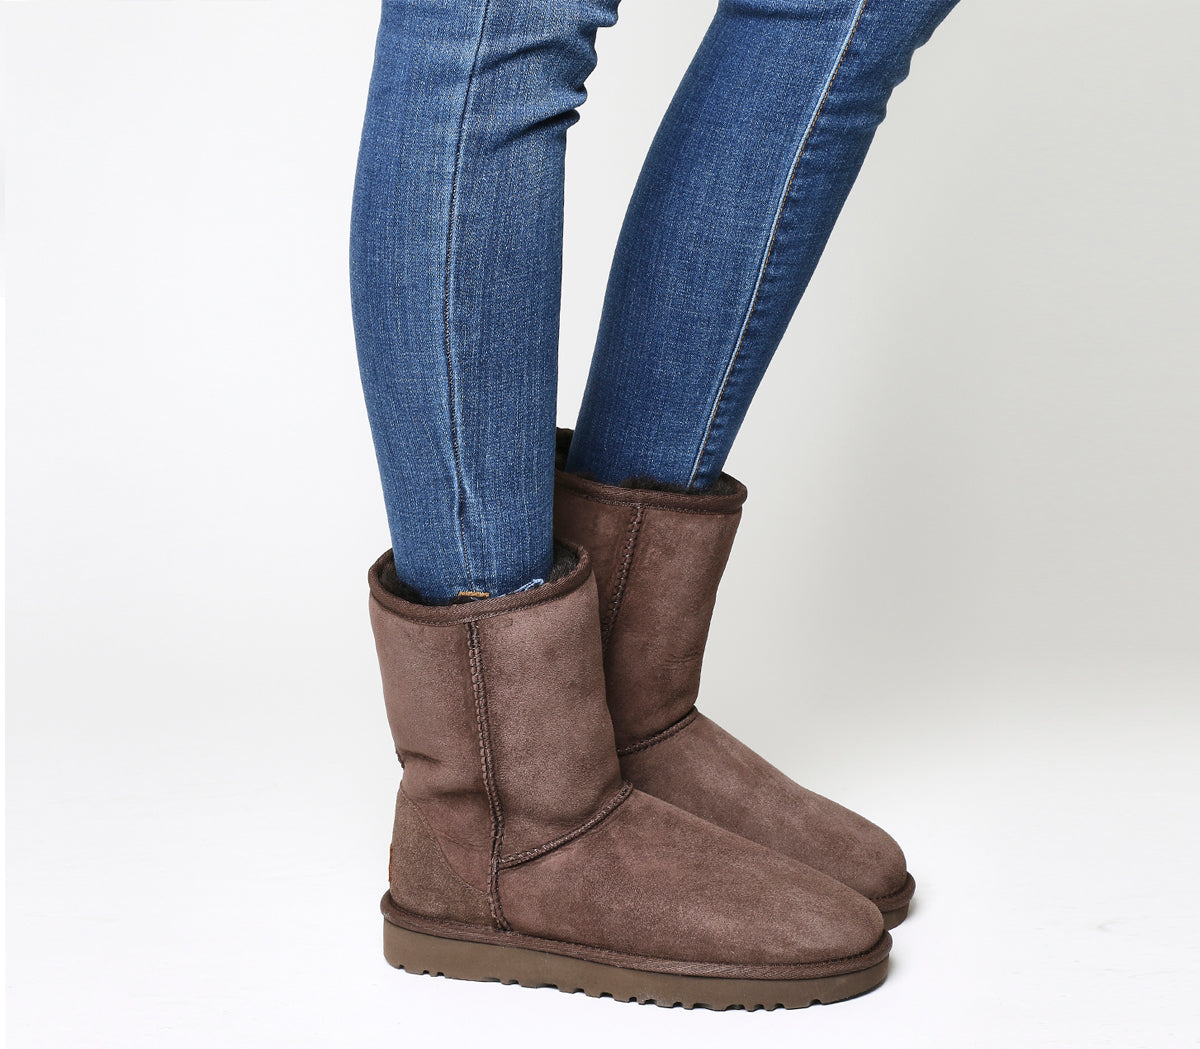 Womens Ugg Classic Short II Boots Chocolate Suede